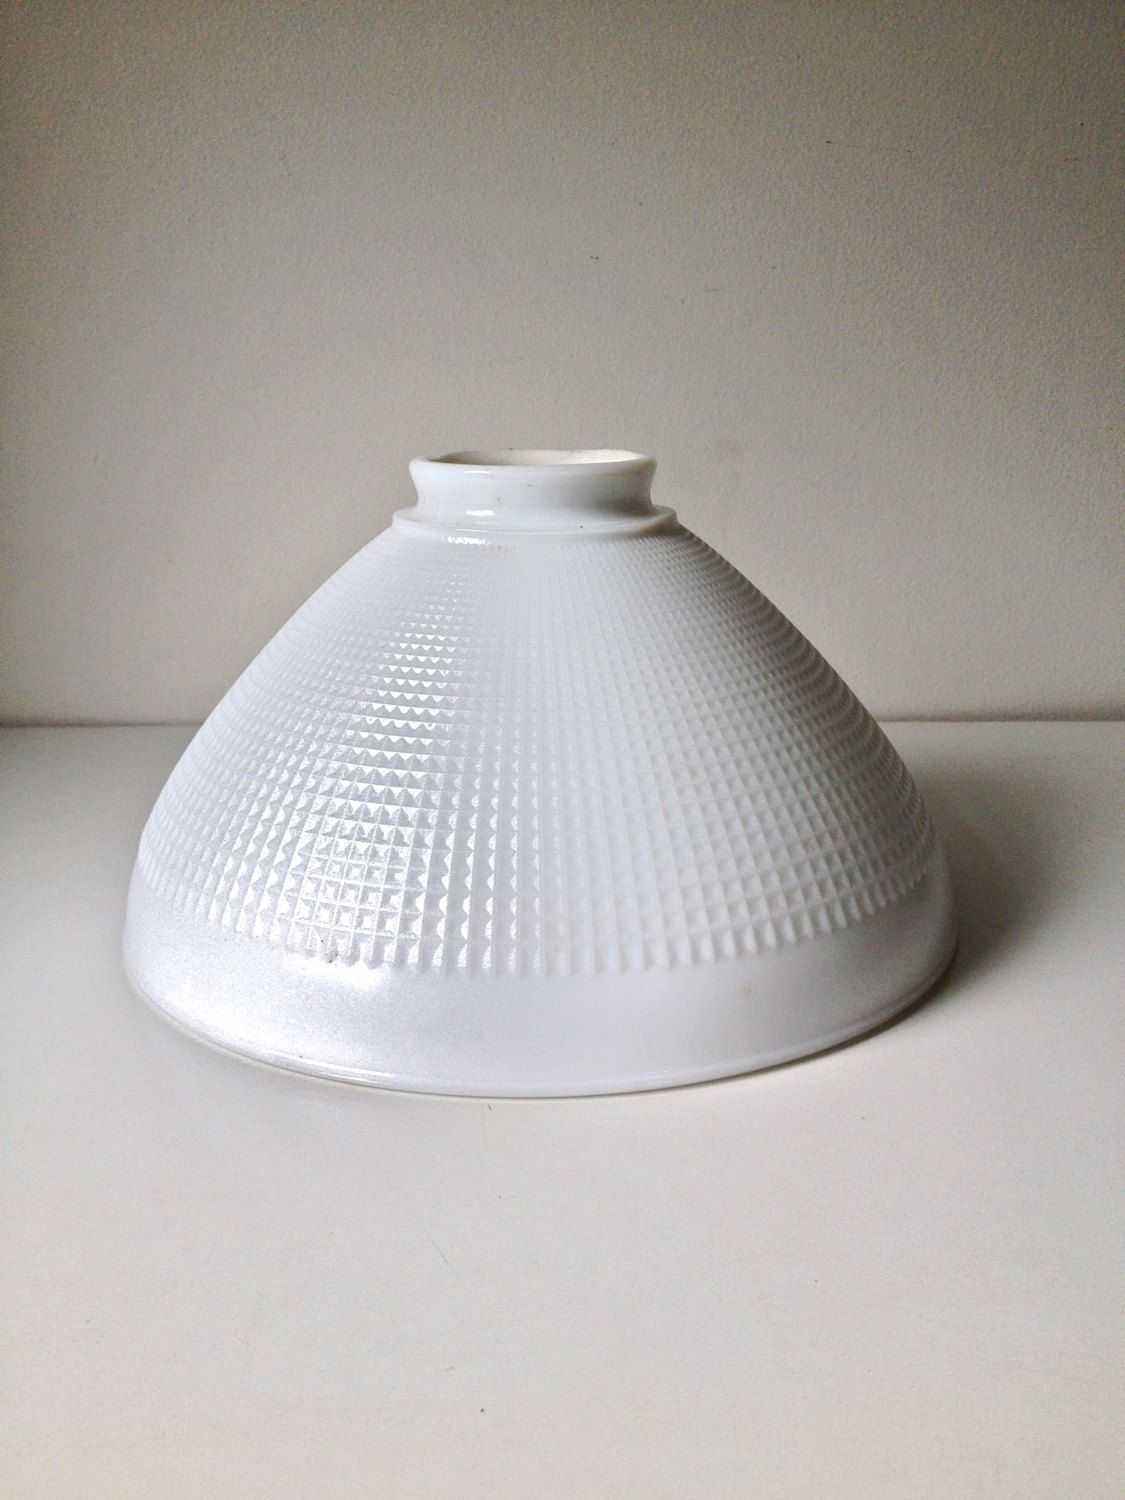 Corning Torchiere Glass Lamp Shade Large 10 Diffuser Etsy Glass Lamp Shade Torchiere Lamp Shade Lamp